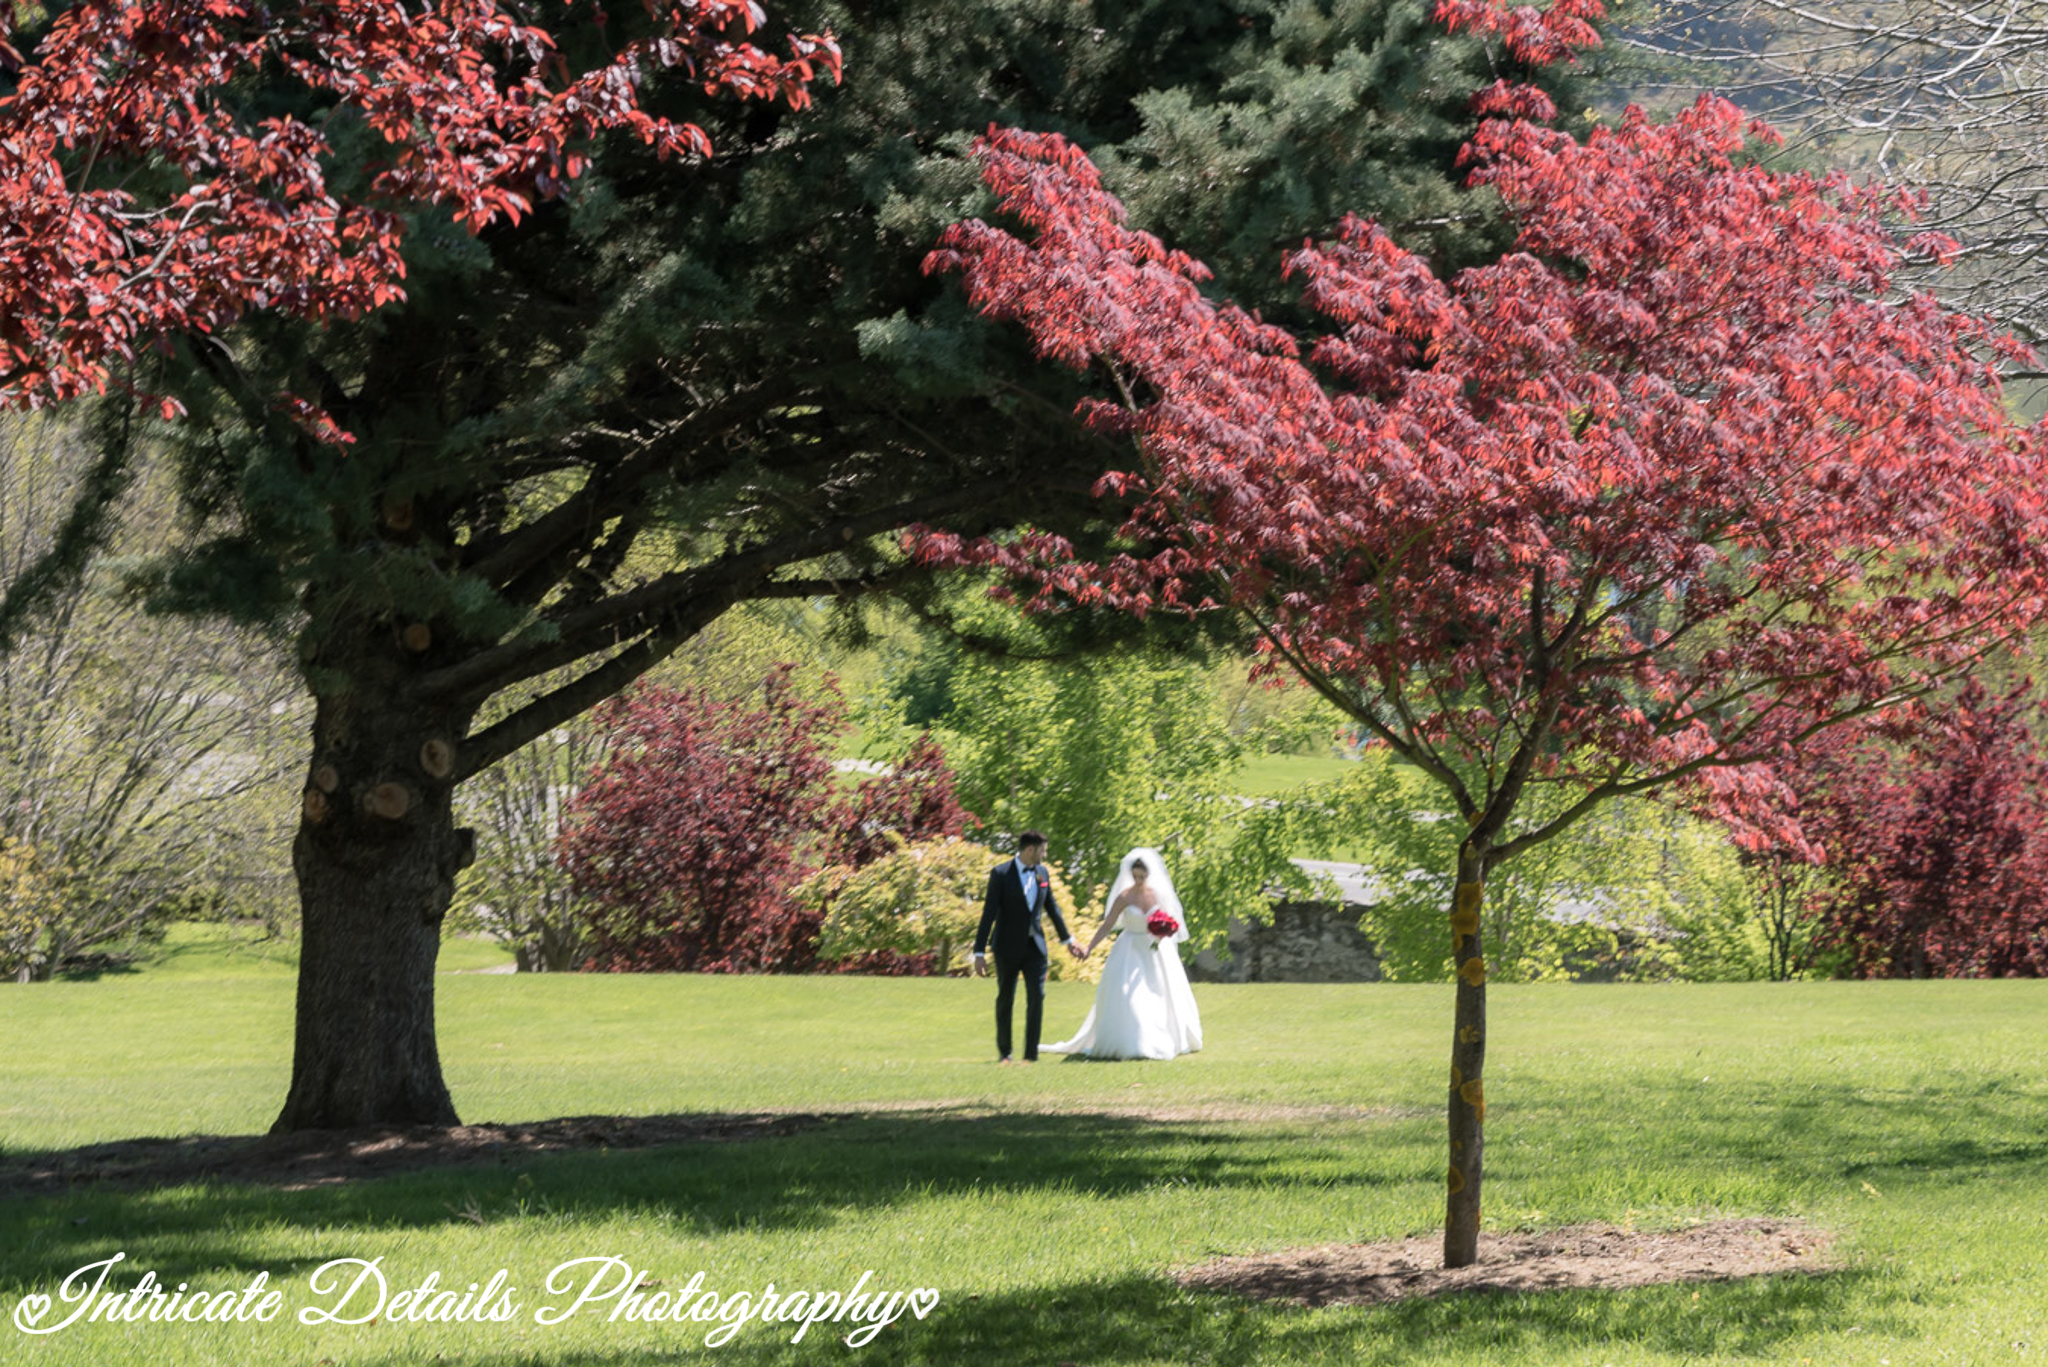 Wedding couple strolling under pretty red tree folliage